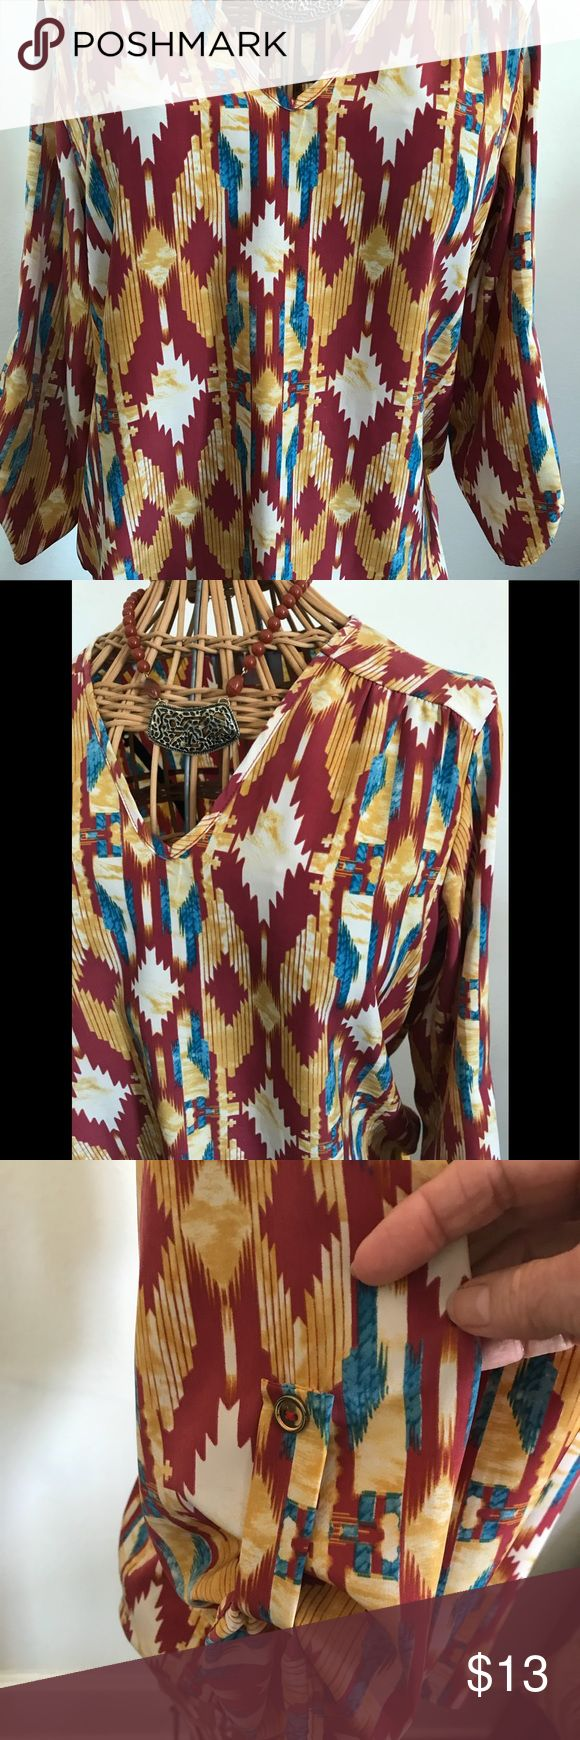 """Charles Aztec Inspired Top Yes, I love southwestern, Aztec Inspired Prints!! Great v-neck. Sleeves permanently rolled up & buttoned. Colors are mustard, blue, dark mauve & cream. Looks great with gold jewelry. Size cut out but I'm saying it's a medium.  Measures 18.5"""" from underarm to underarm  24.5"""" from top of shoulder to hem front, 25.5 in back  Sleeves 18"""" charlee Tops Blouses"""